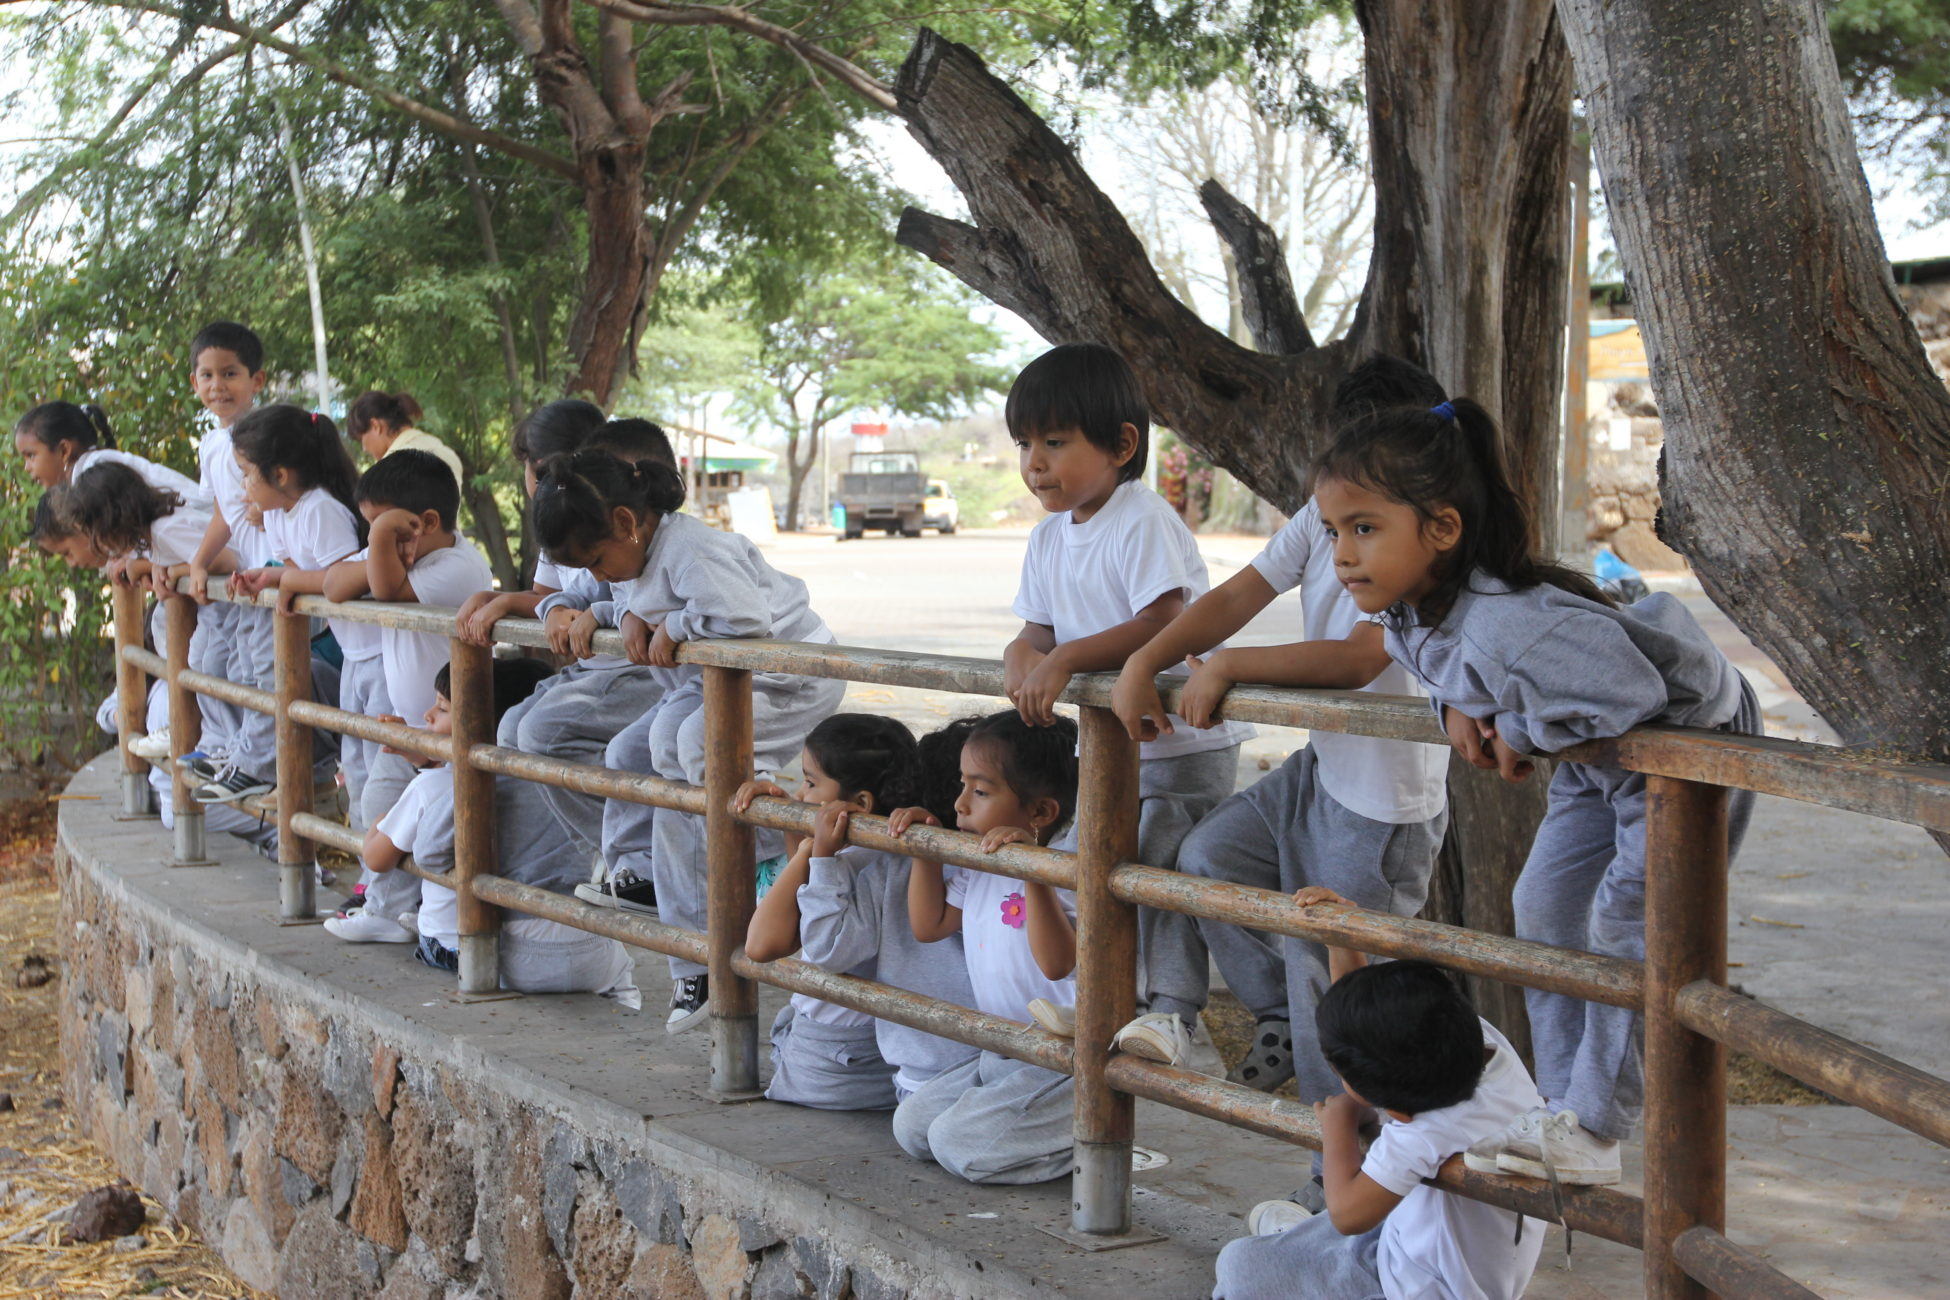 young children perch on a fence overlooking the main port on the island of San Cristobal.